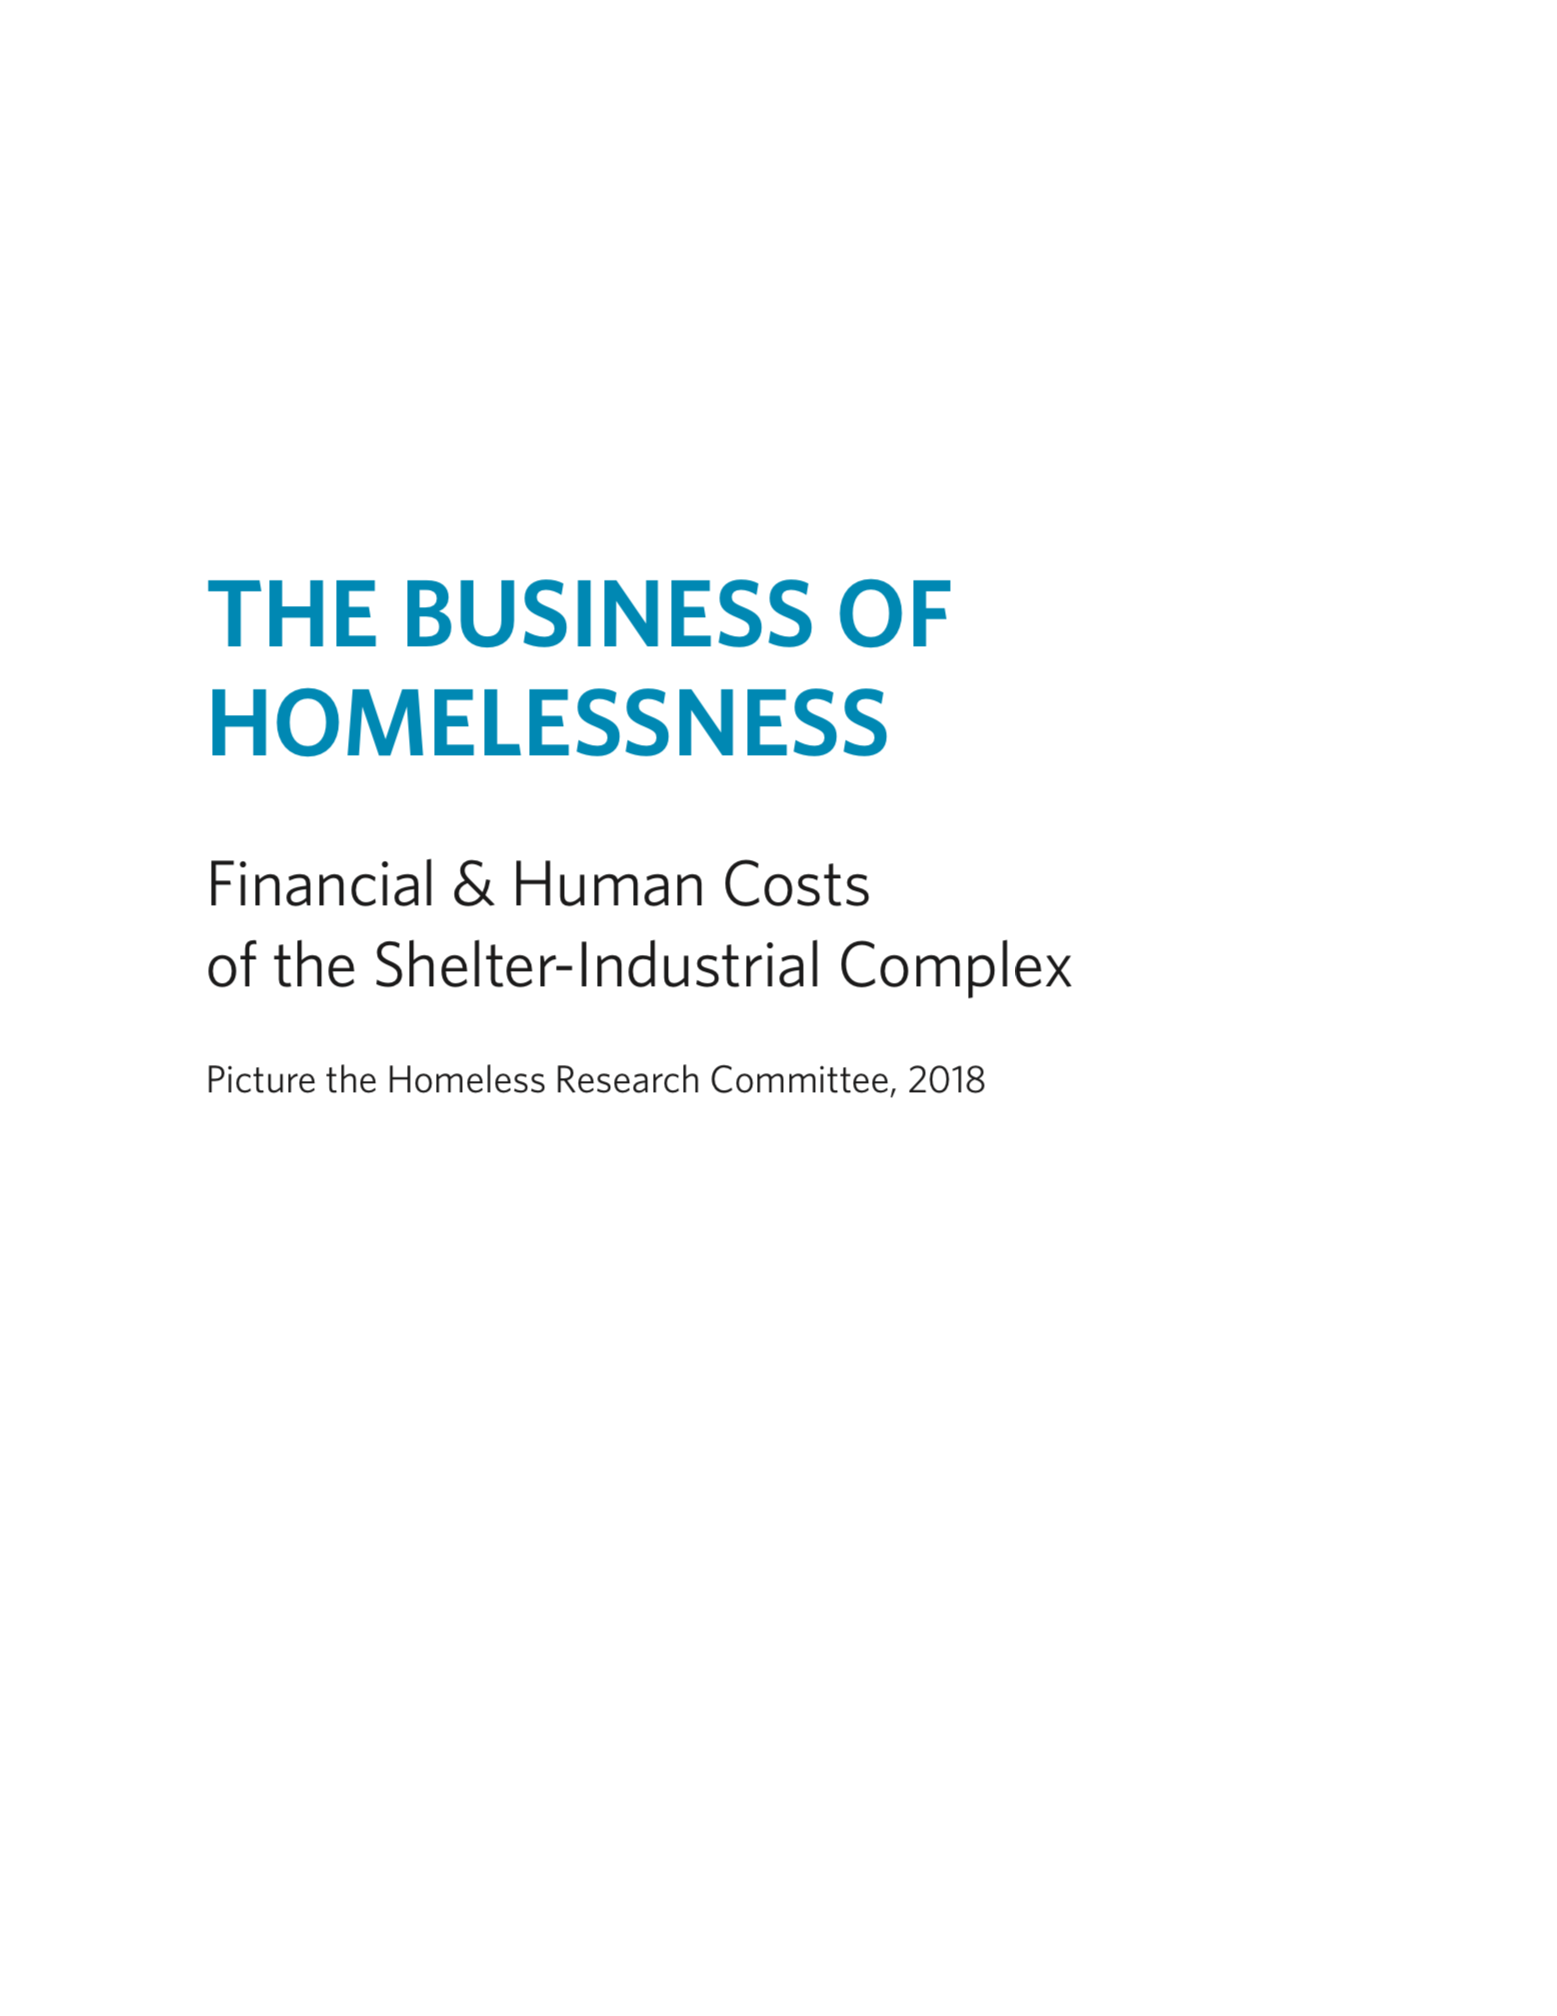 The Business of Homelessness: Financial and Human Costs of the Shelter-Industrial Complex